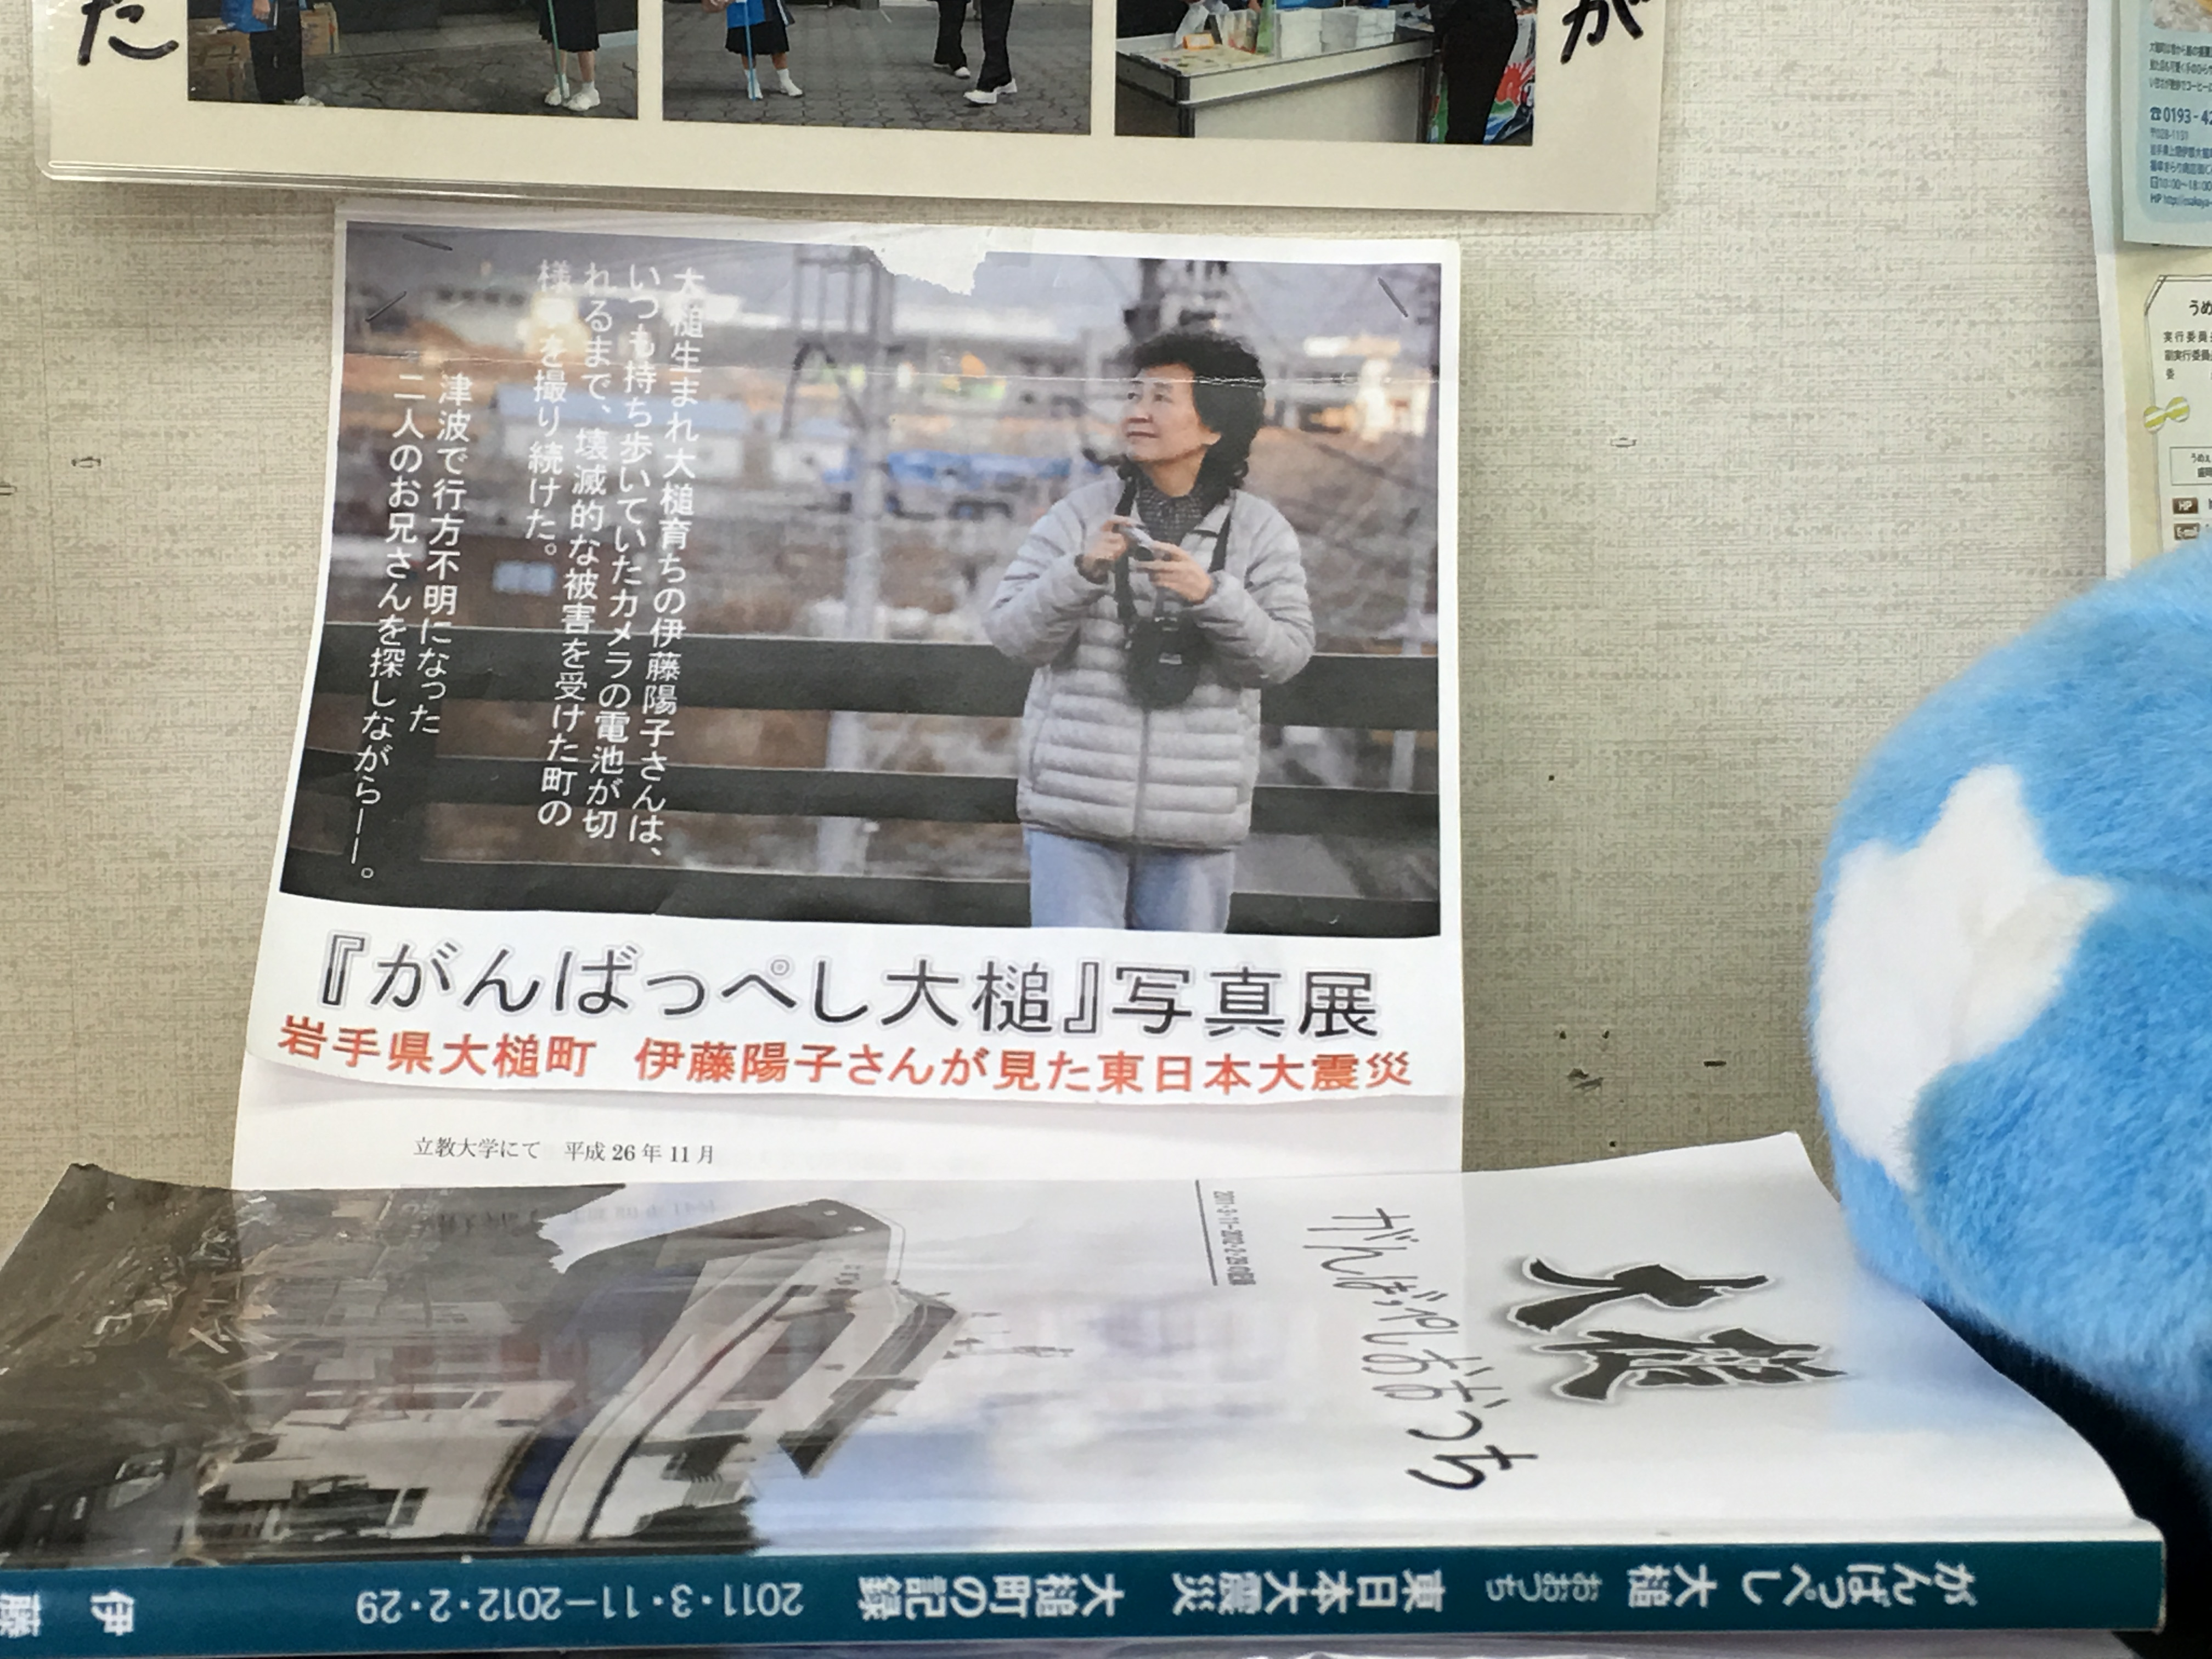 otsuchi itto san with poster of book.JPG